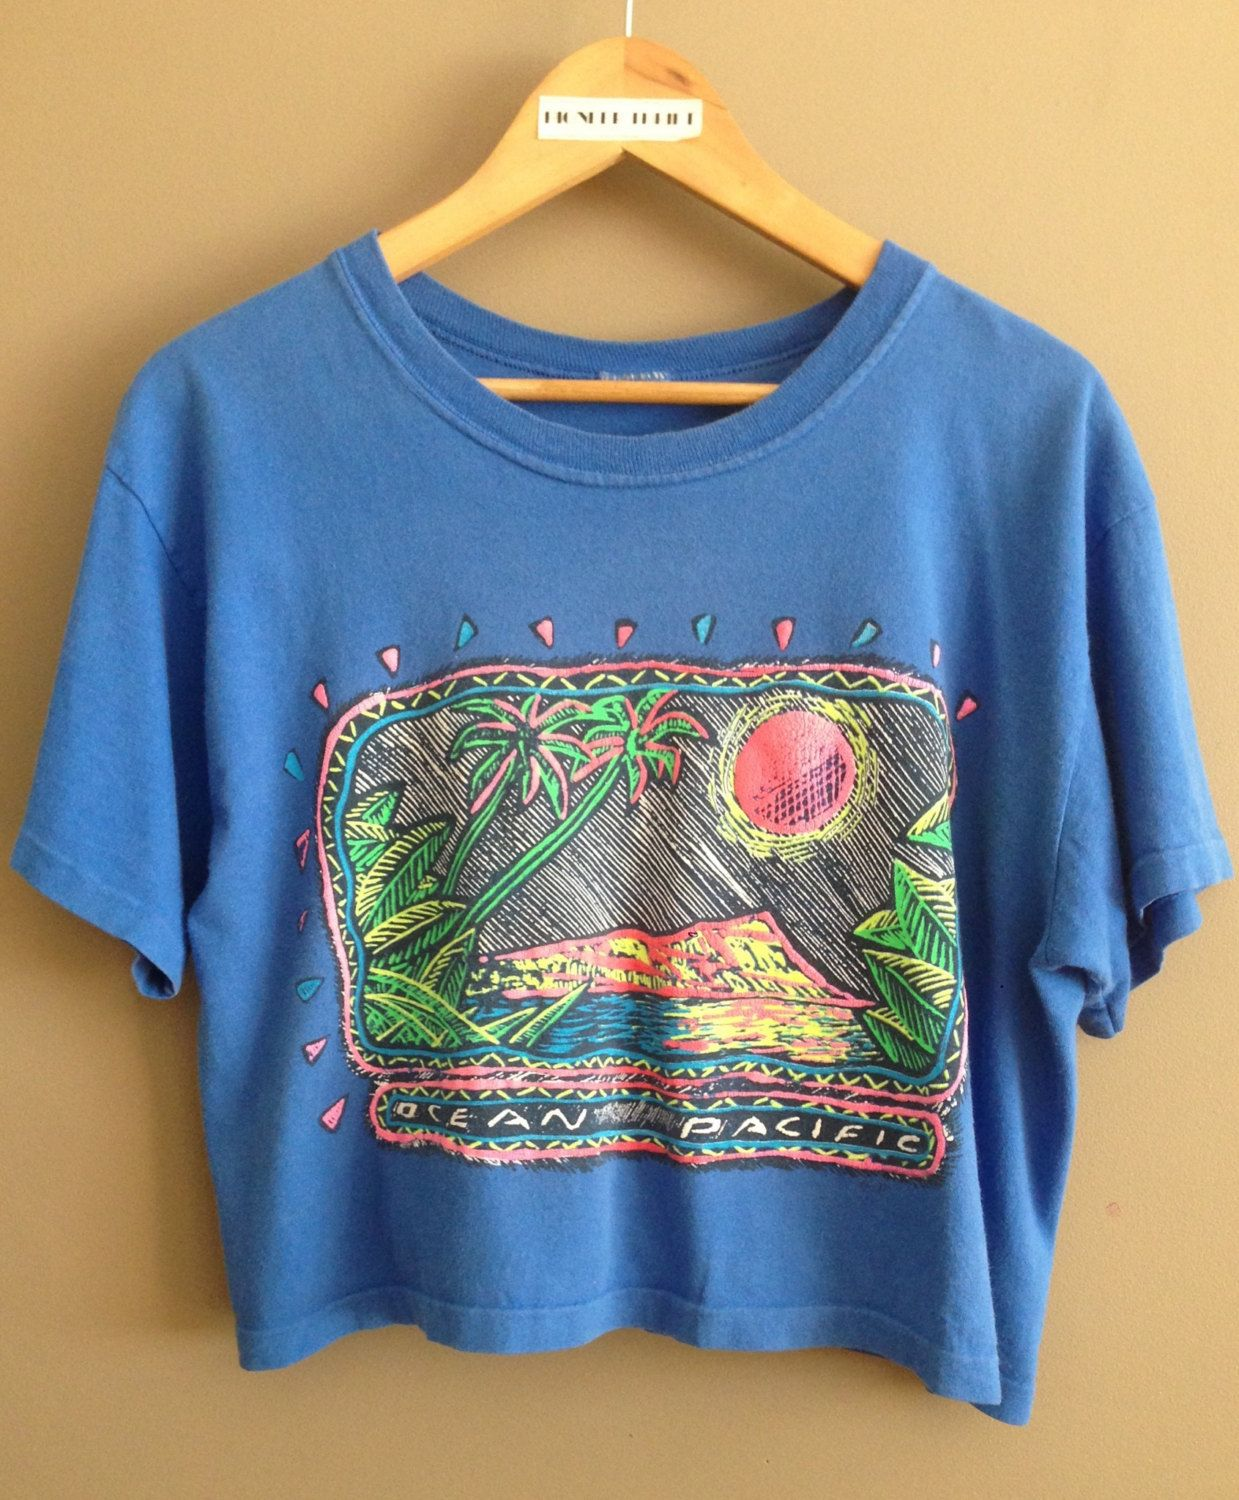 7f4e6c3bf Vintage Ocean Pacific Cropped Tshirt/ Ocean Pacific/ Vintage Crop Top/ Crop  Tee/ Surf Tee/ Surfer/ Vintage Surf/ Graphic Tee/ 90s Girl by PioneerThrift  on ...